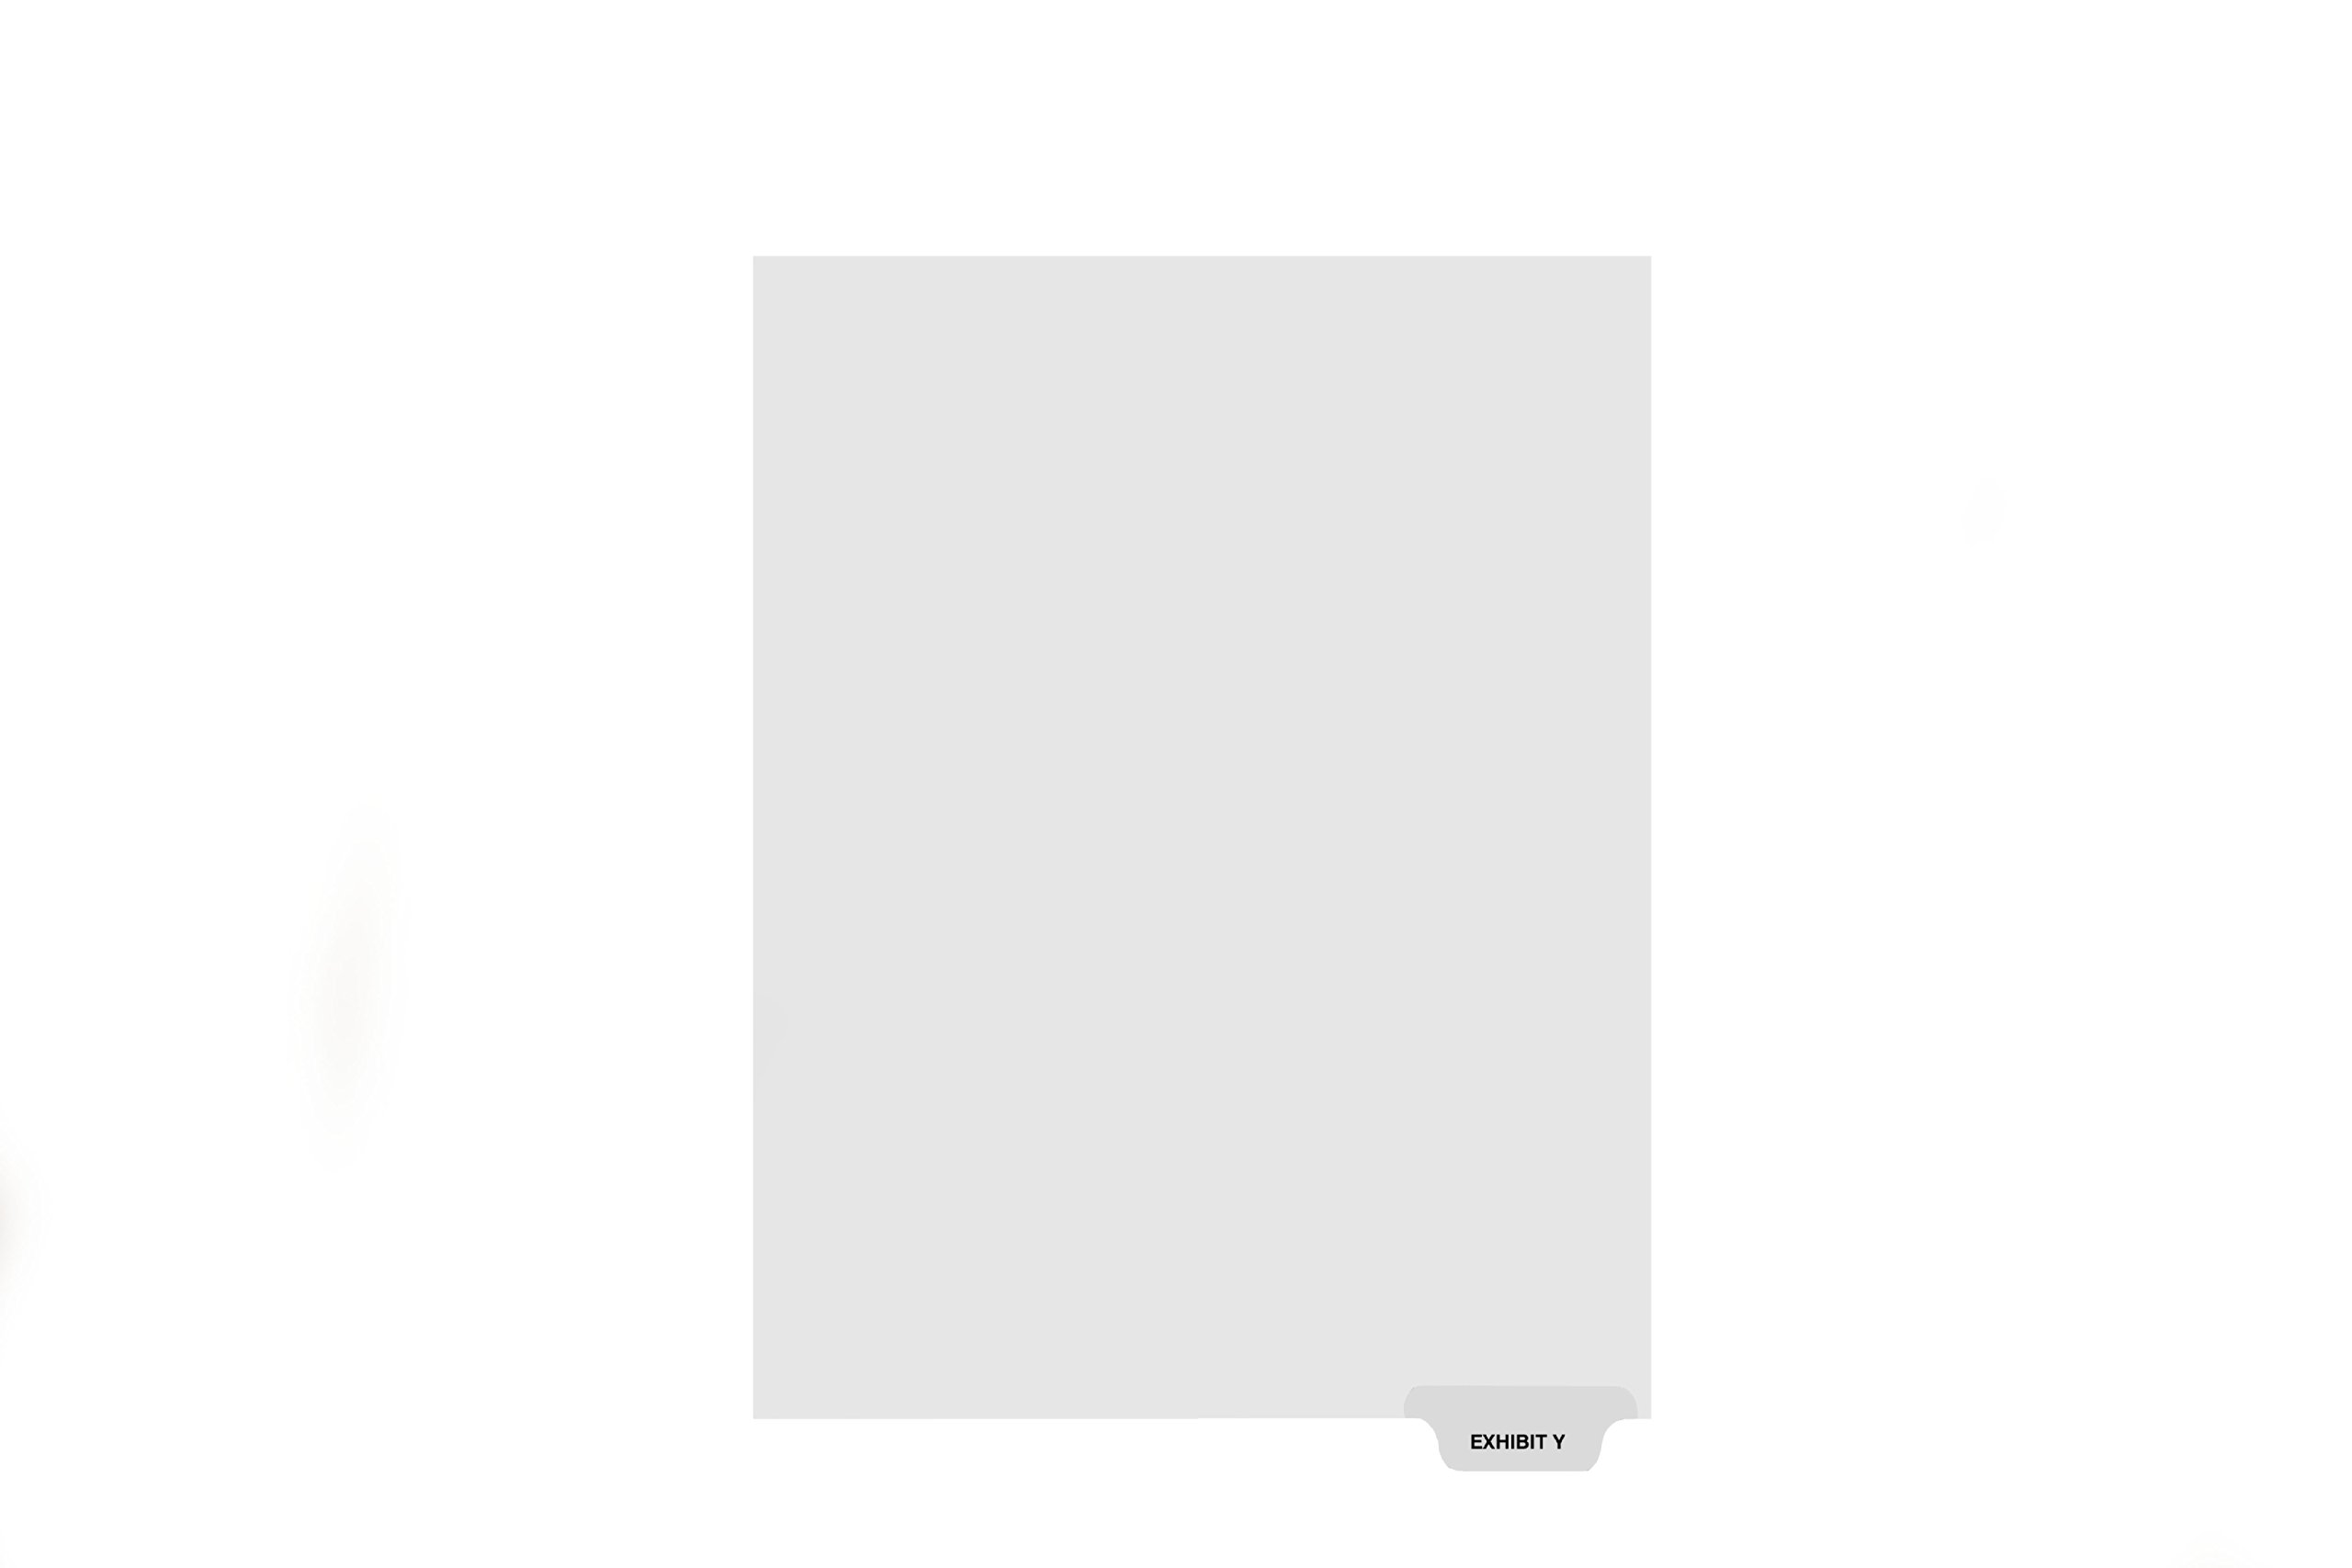 Kleer-Fax Letter-Size Individual Exhibit Letter Index Dividers, Bottom Tab, 1/5th Cut, 25 Sheets/Pack, White, Exhibit Y (81164)